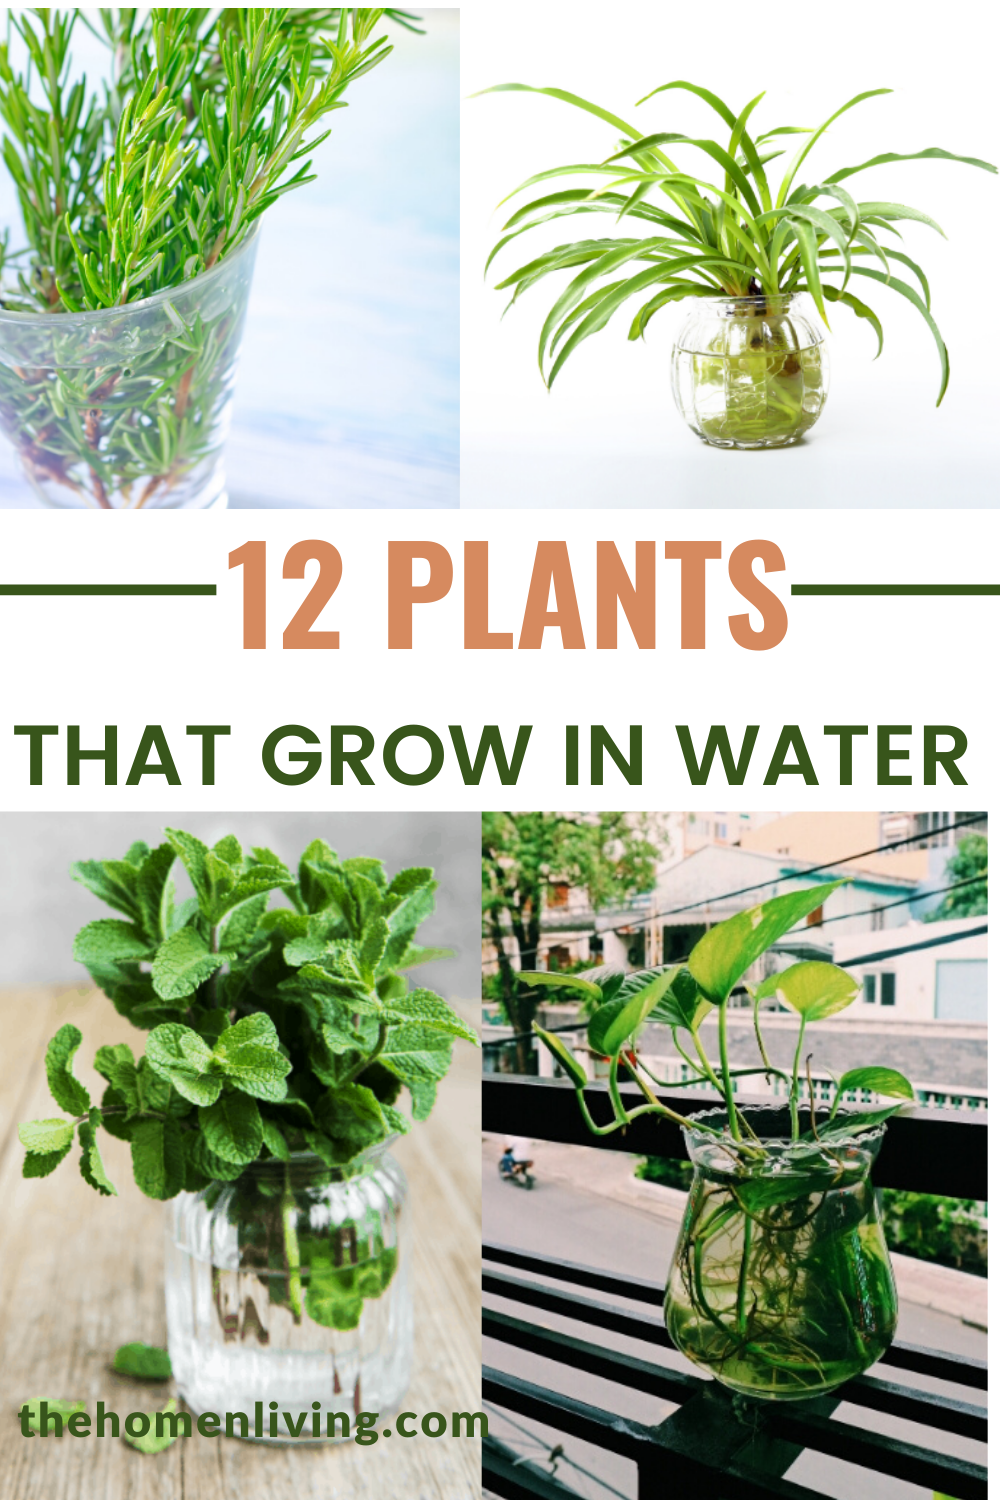 12 Houseplants That Can Grow In Water In 2020 Water Garden Plants Plants Grown In Water Growing Plants Indoors